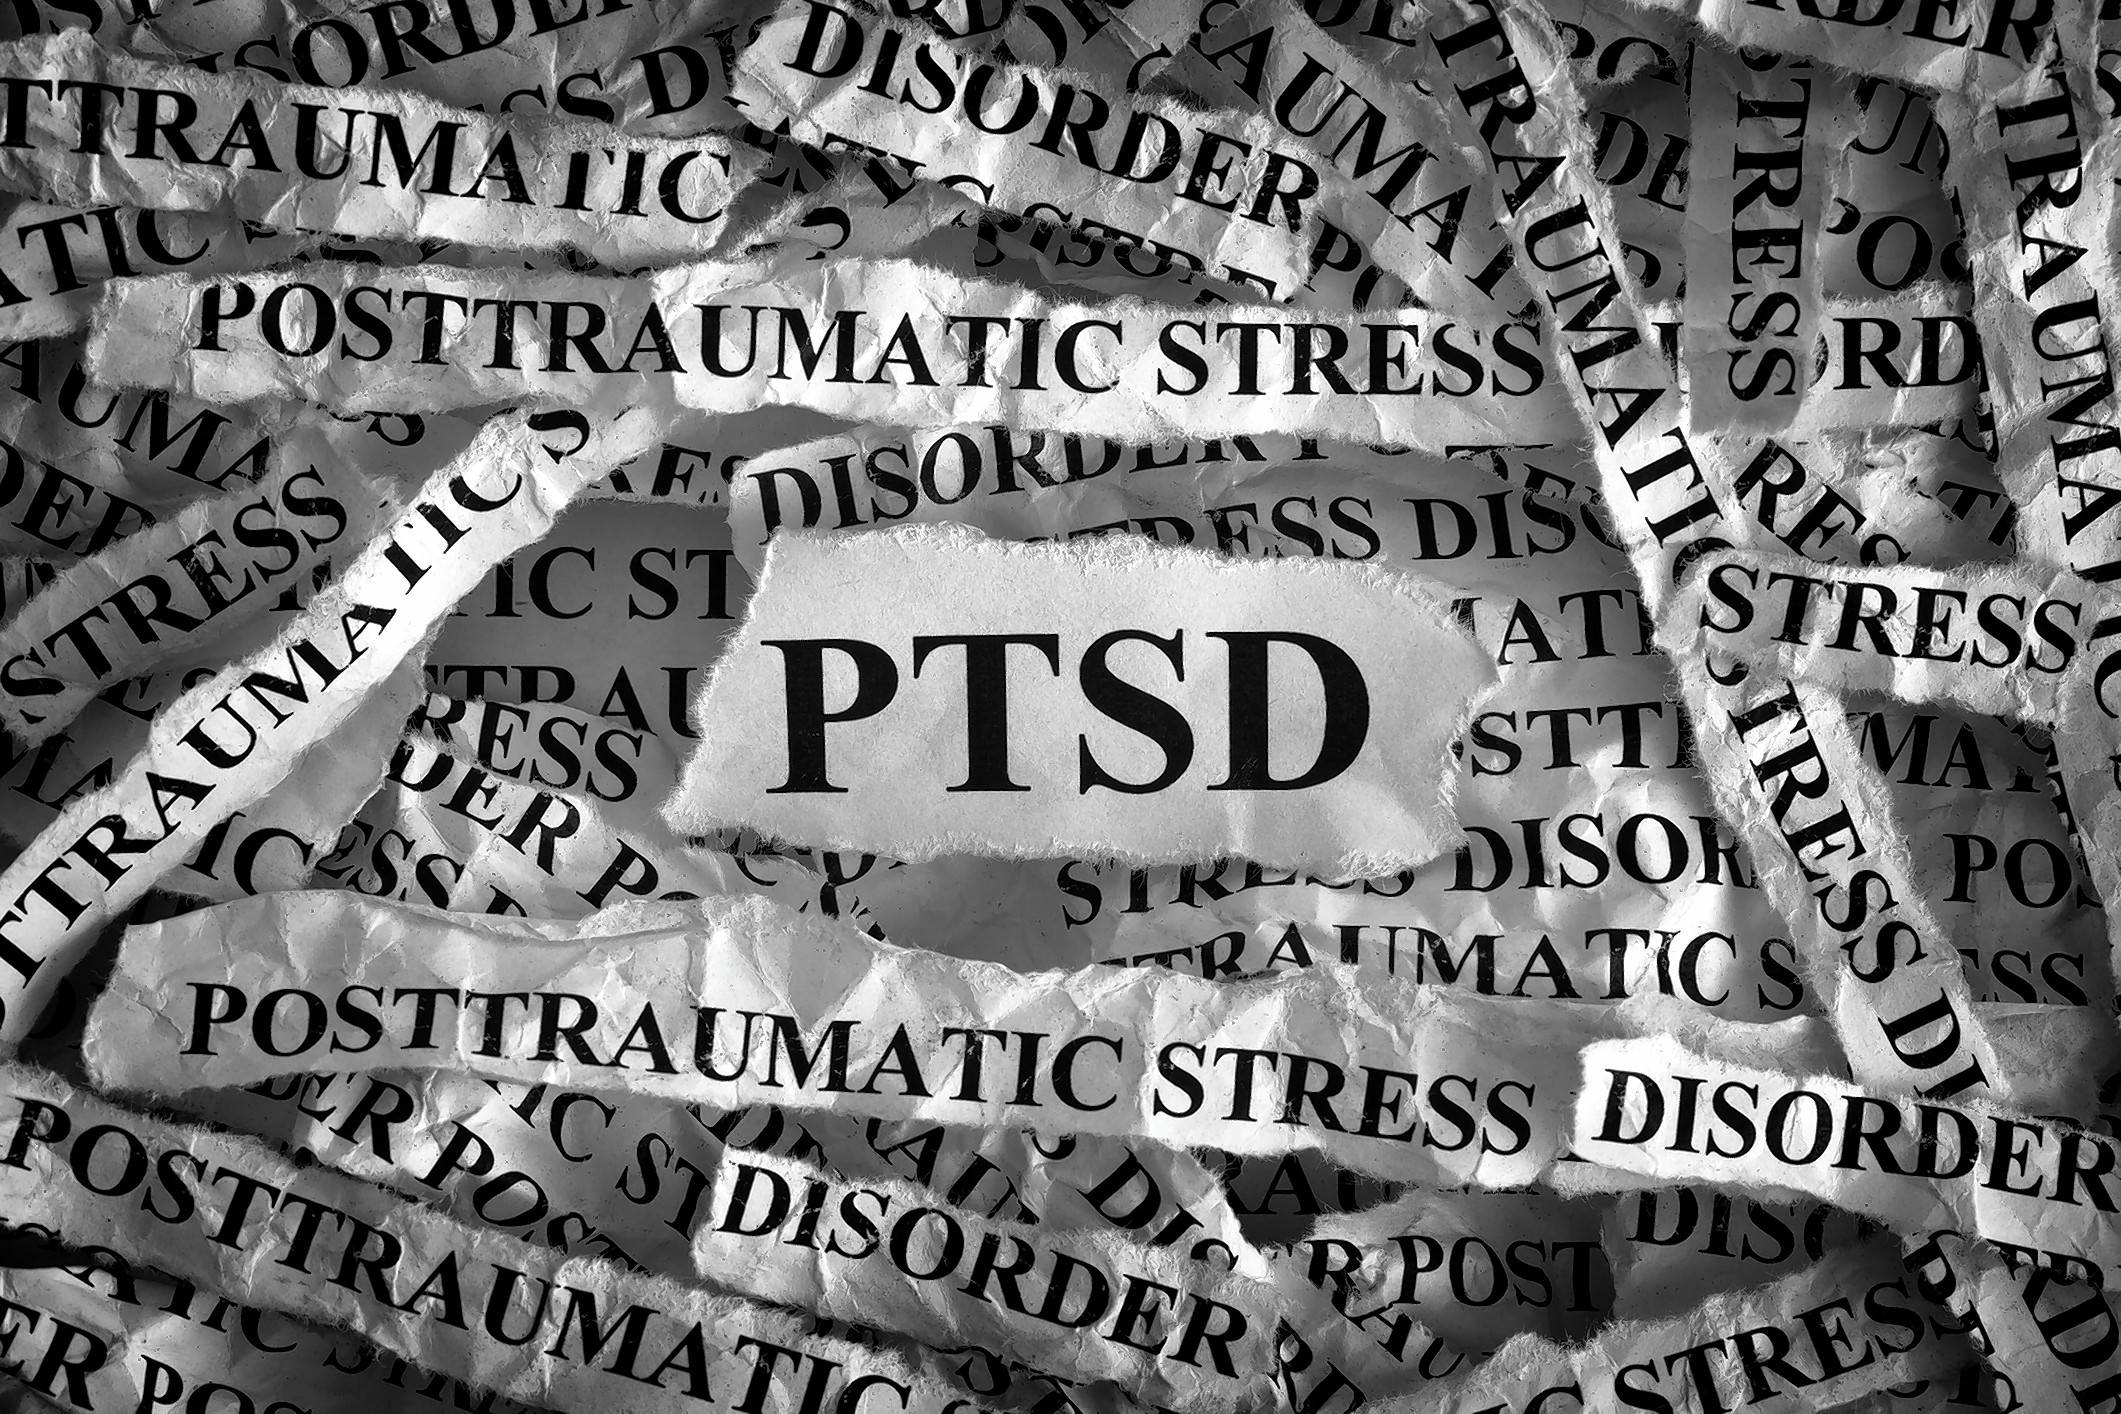 Eye Movement Desensitization and Reprocessing is being used to treat those suffering from PTSD.